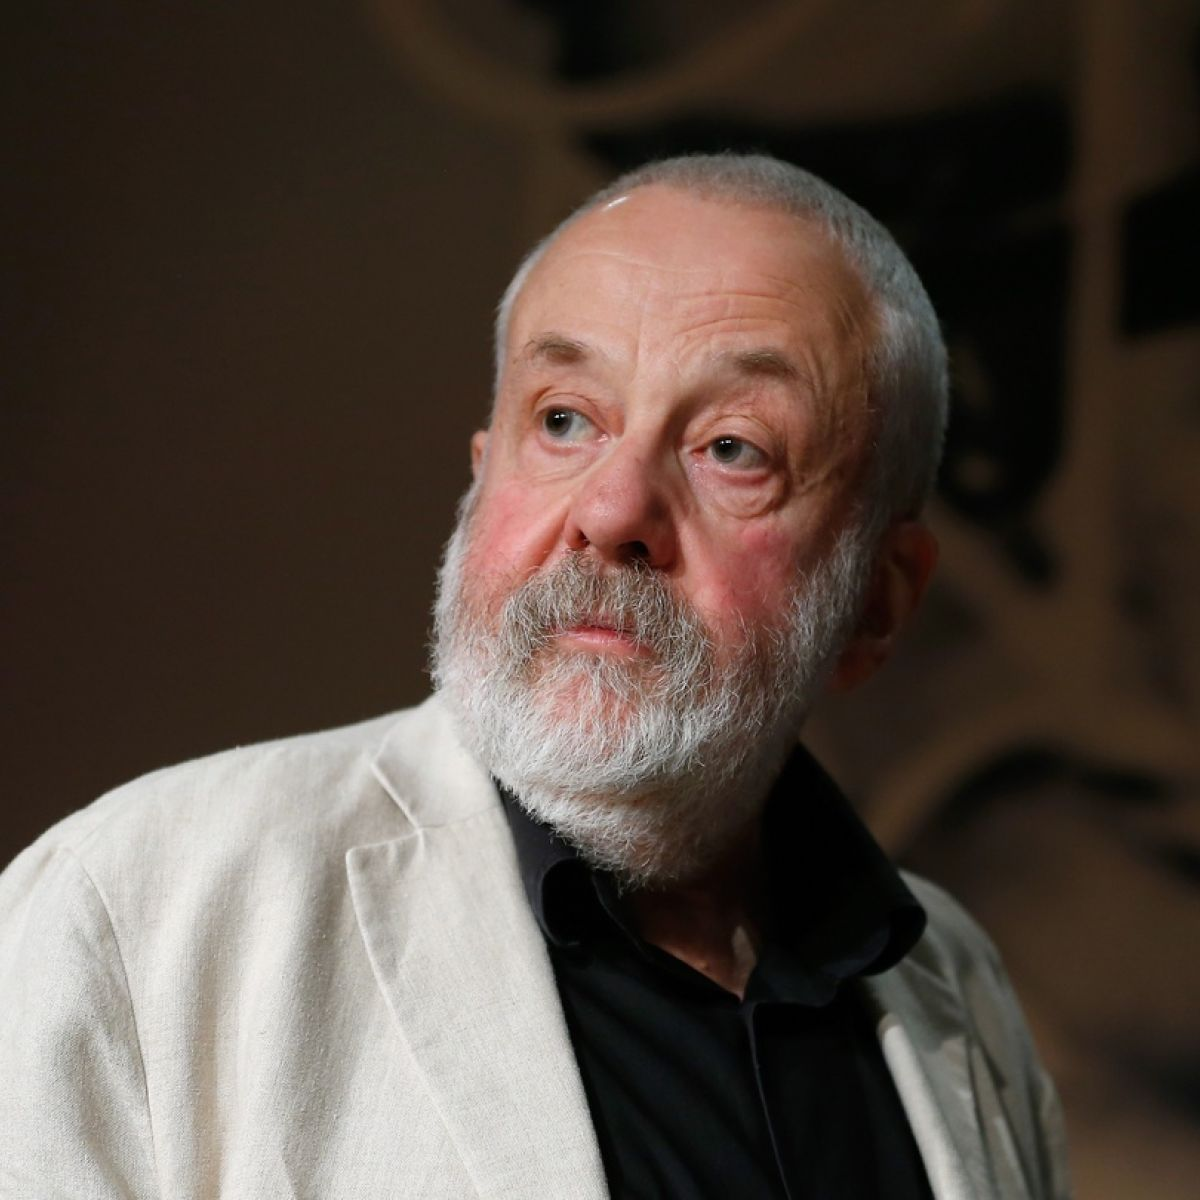 Amanda Steadman mike leigh: 'brexit was a terrible manipulation of people